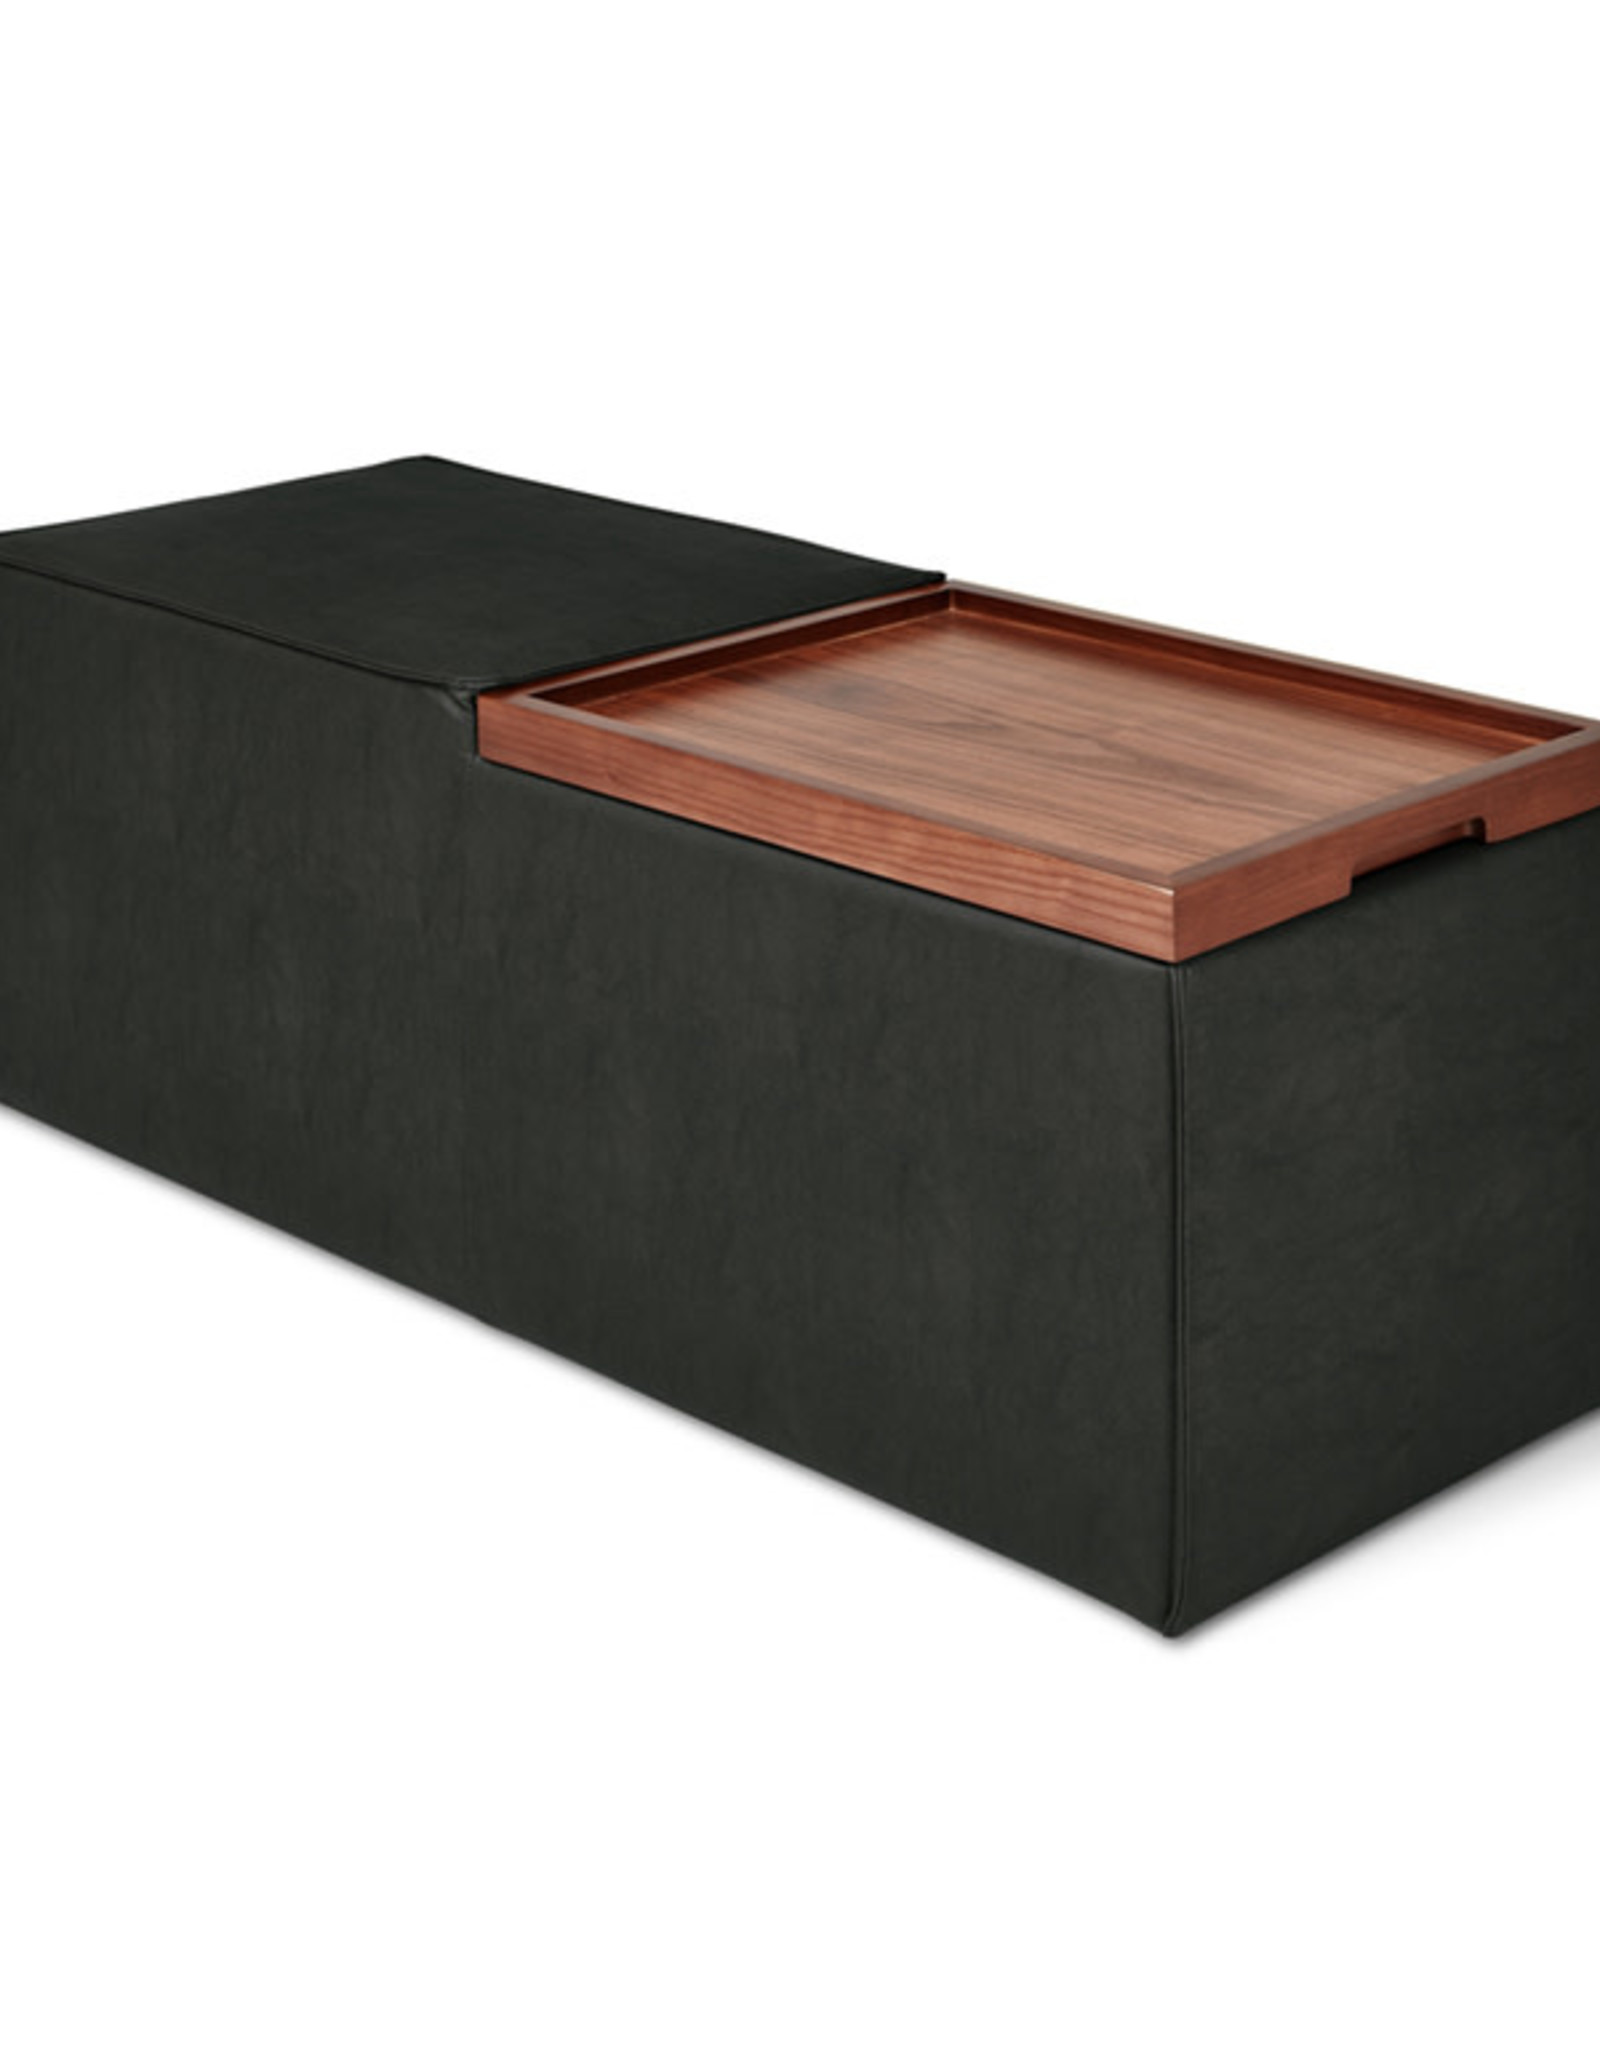 Gus* Modern Mix Storage Box Base